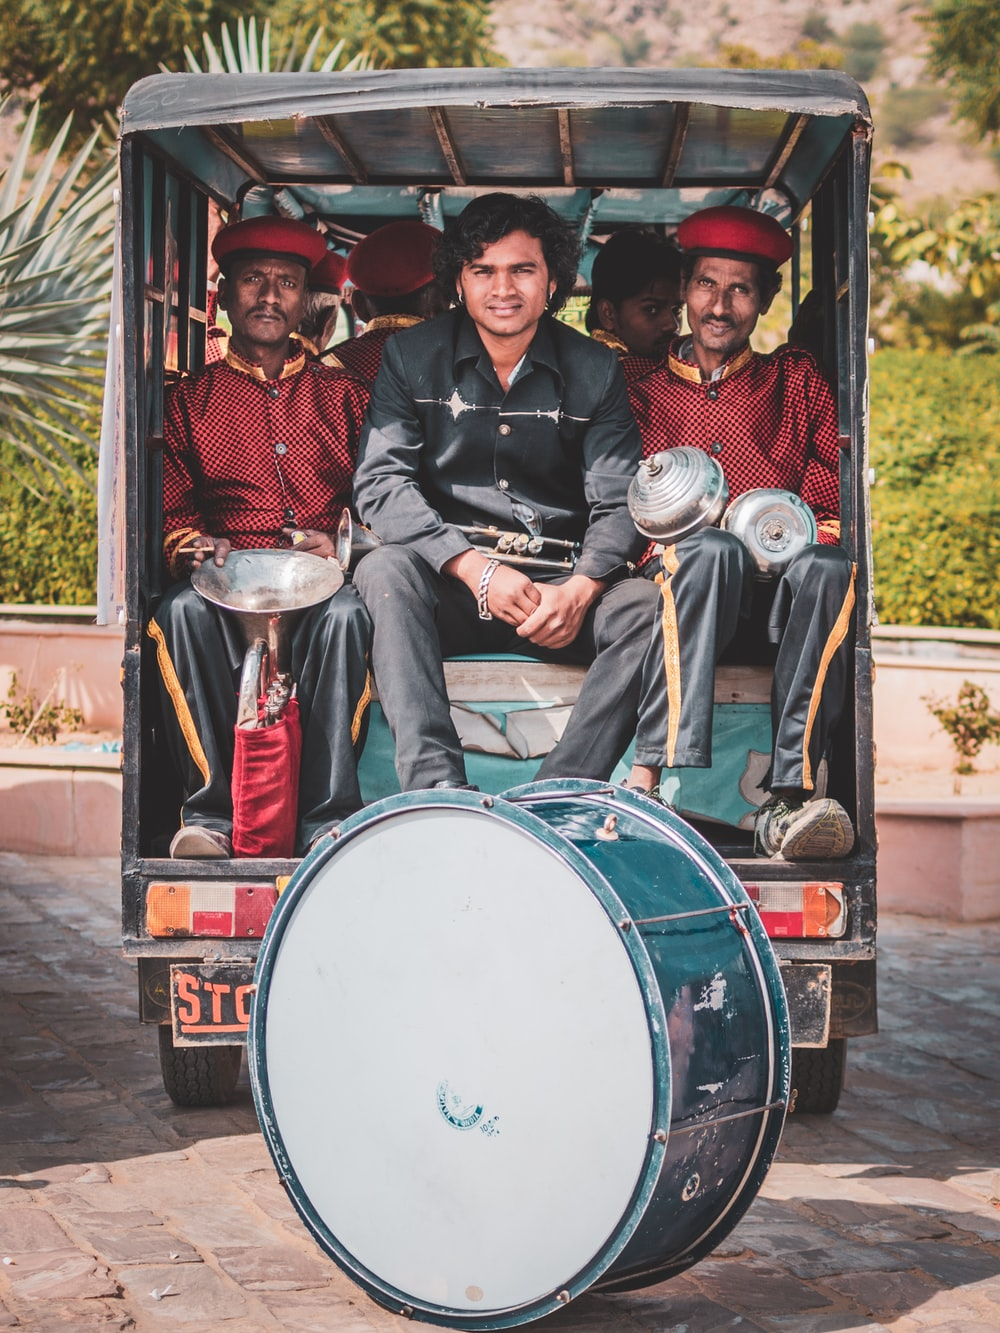 people in band uniform riding in auto rickshaw